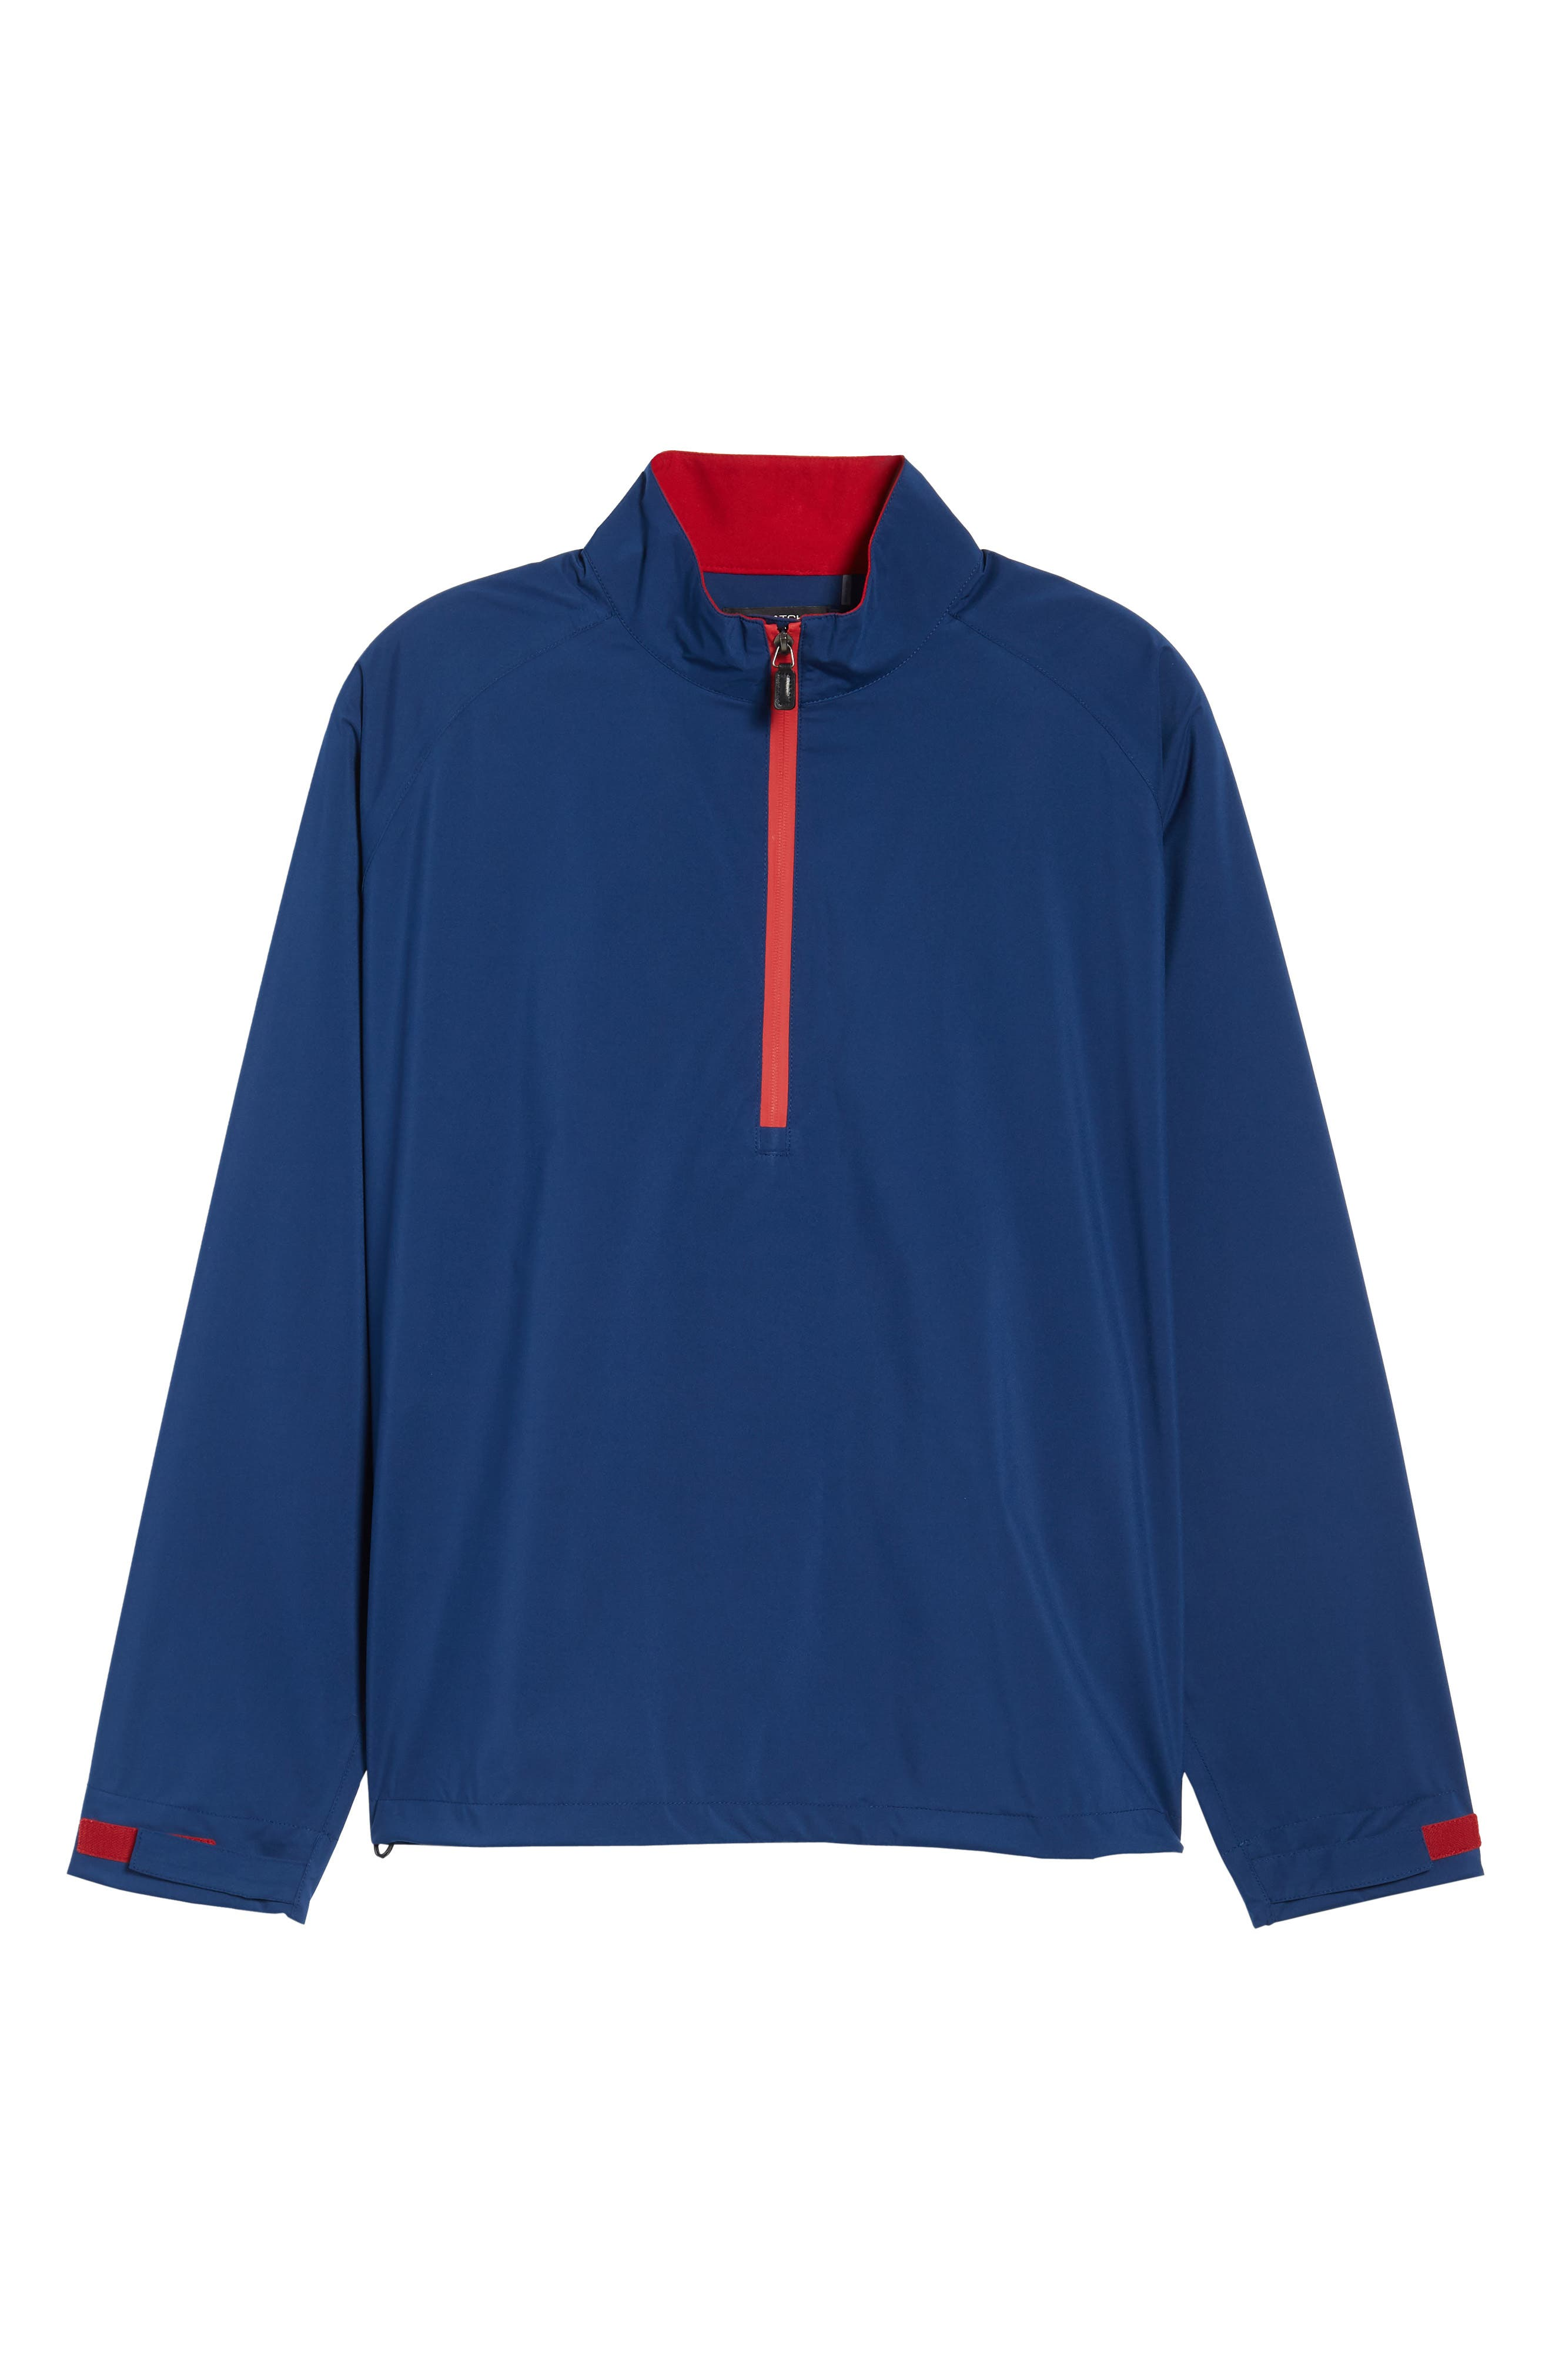 Regular Fit Half Zip Performance Pullover,                             Alternate thumbnail 6, color,                             411